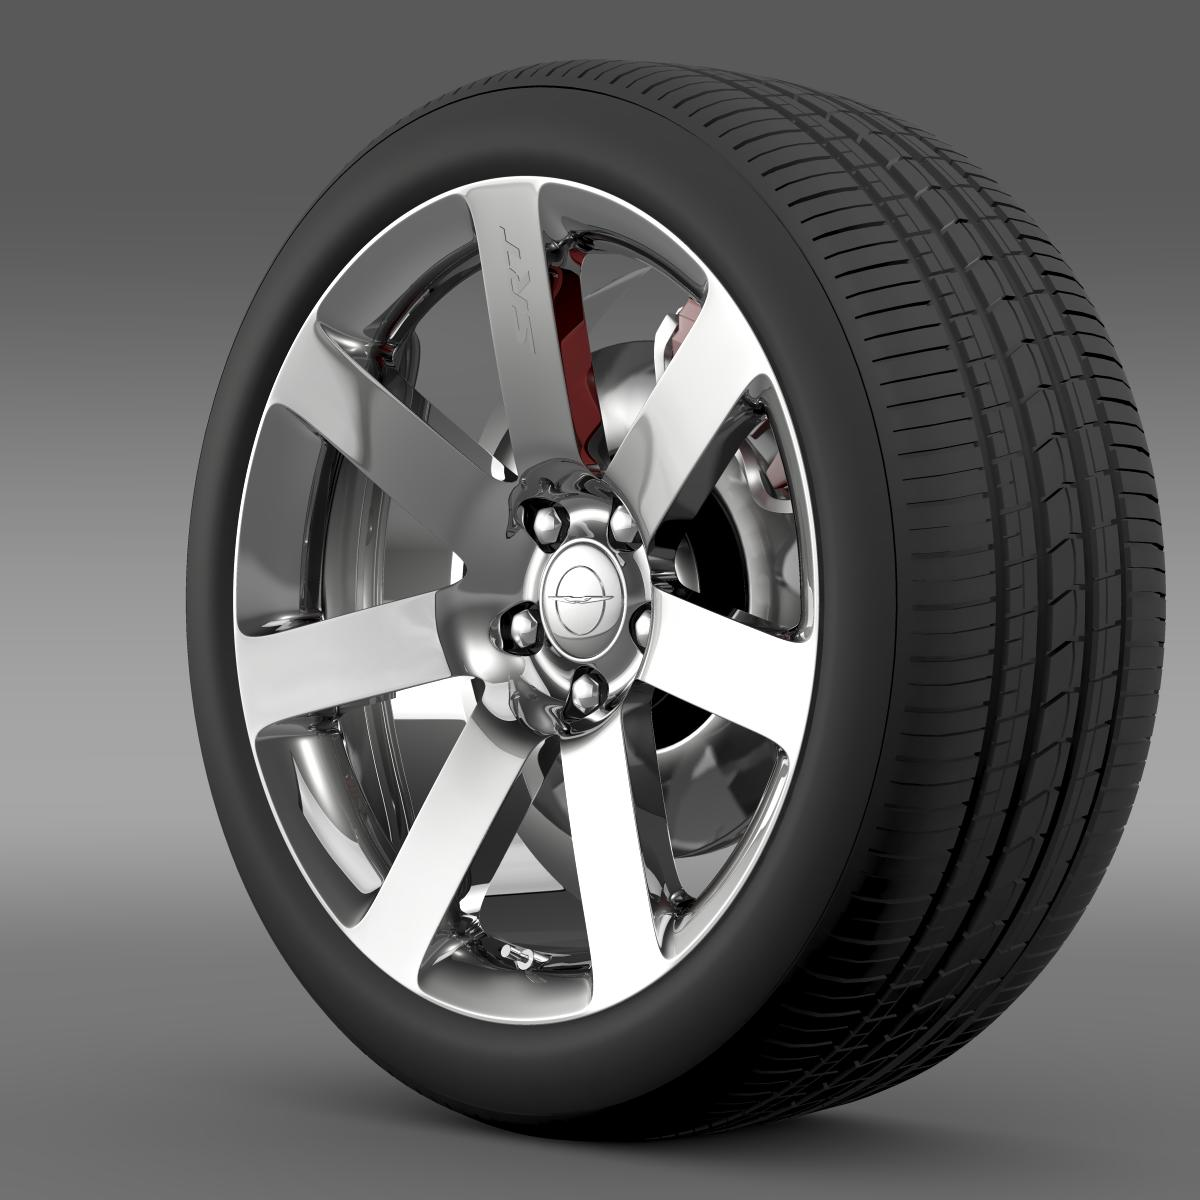 chrysler 300 srt8 wheel 3d model 3ds max fbx c4d lwo ma mb hrc xsi obj 210654